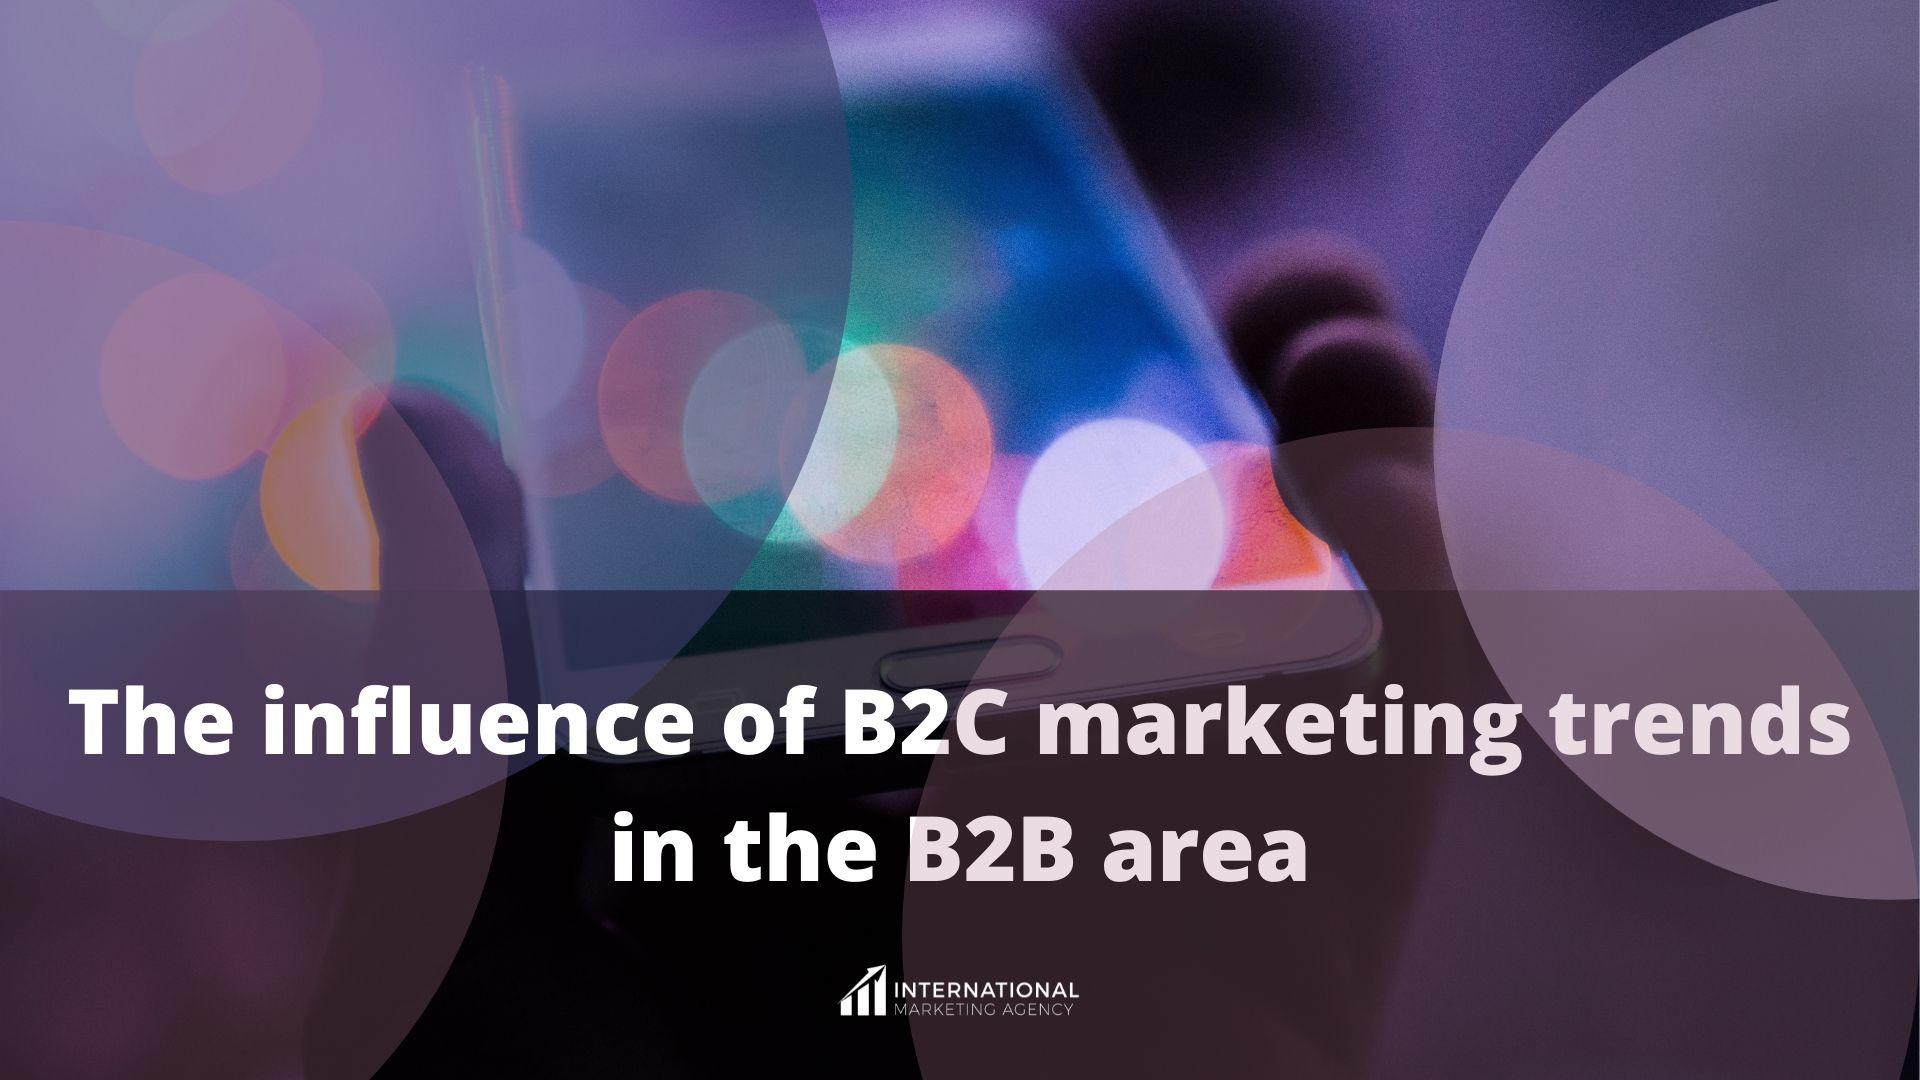 The influence of B2C marketing trends in the B2B area